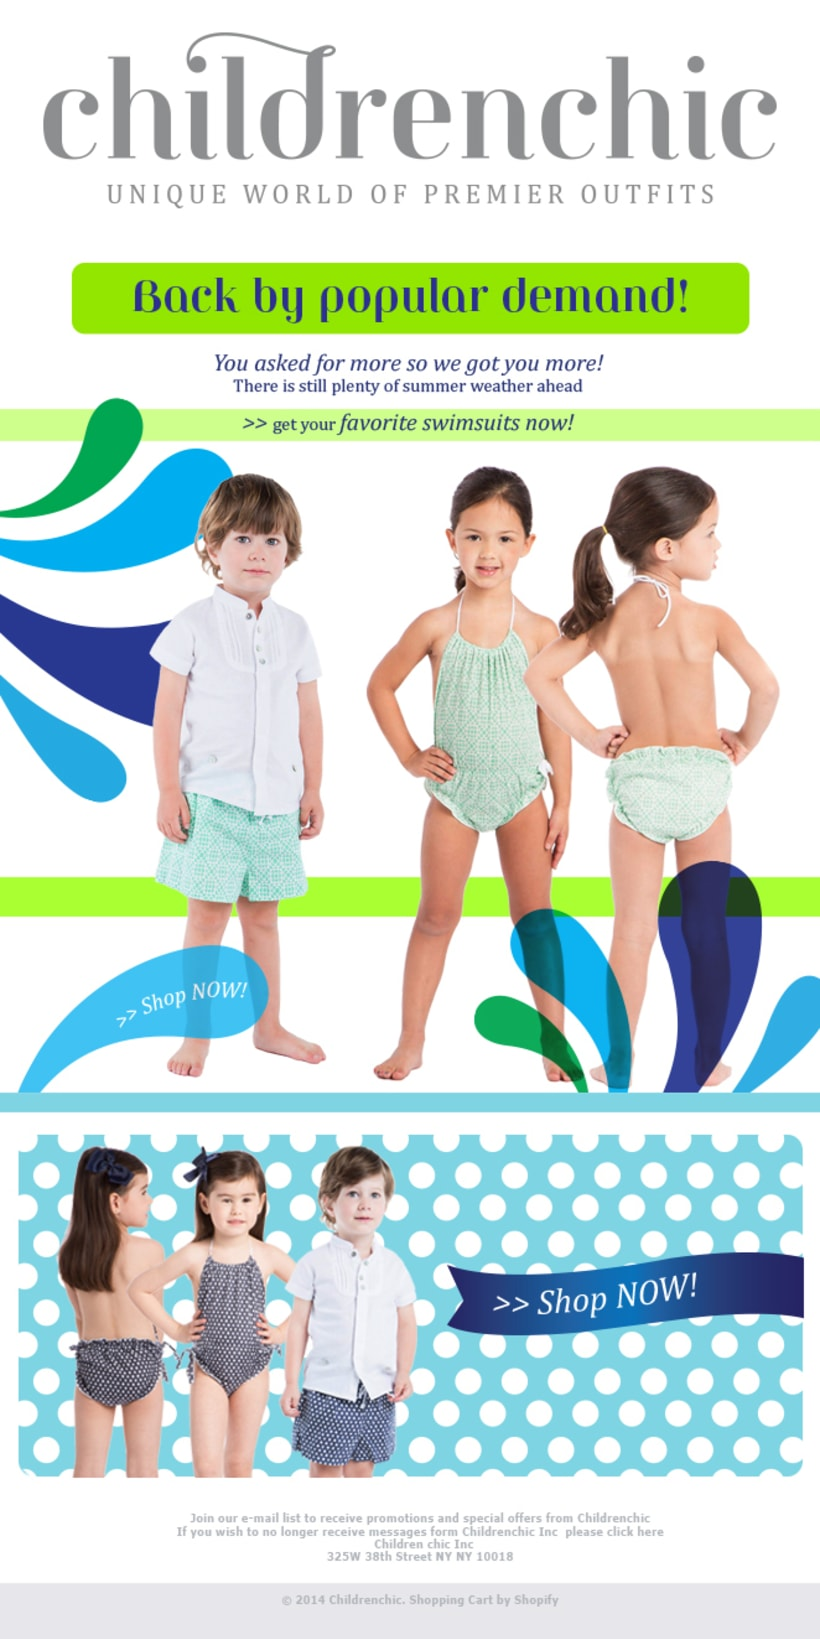 Template Email Blast: CHILDRENCHIC 5